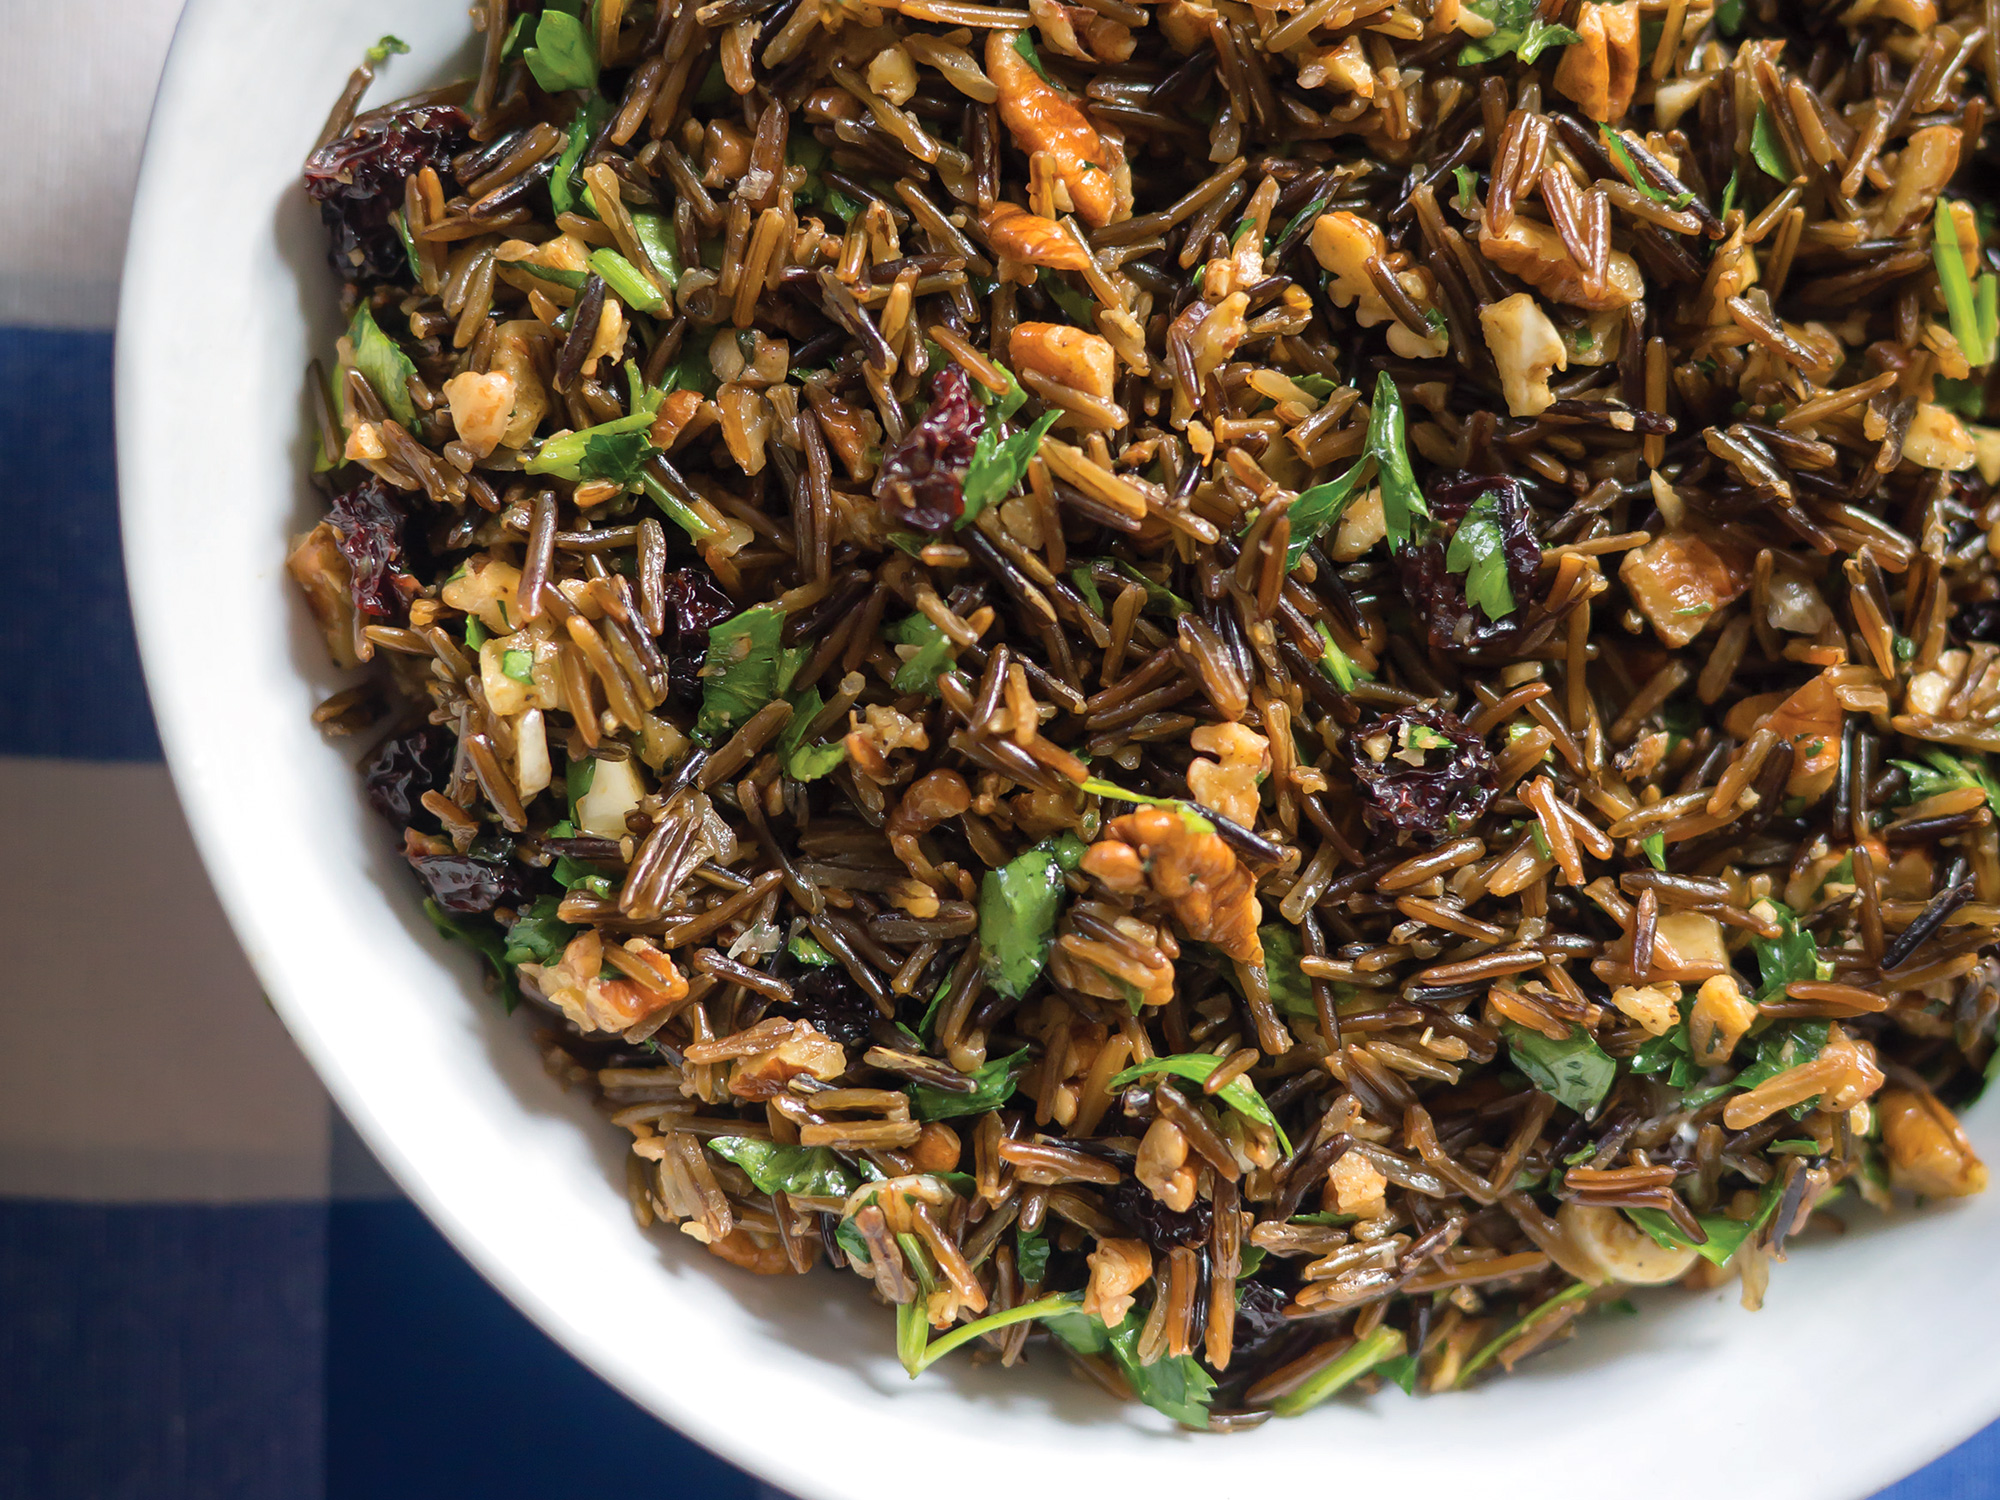 Chili oil, cherries, and pecans enhance this deliciously different Southern rice pilaf.